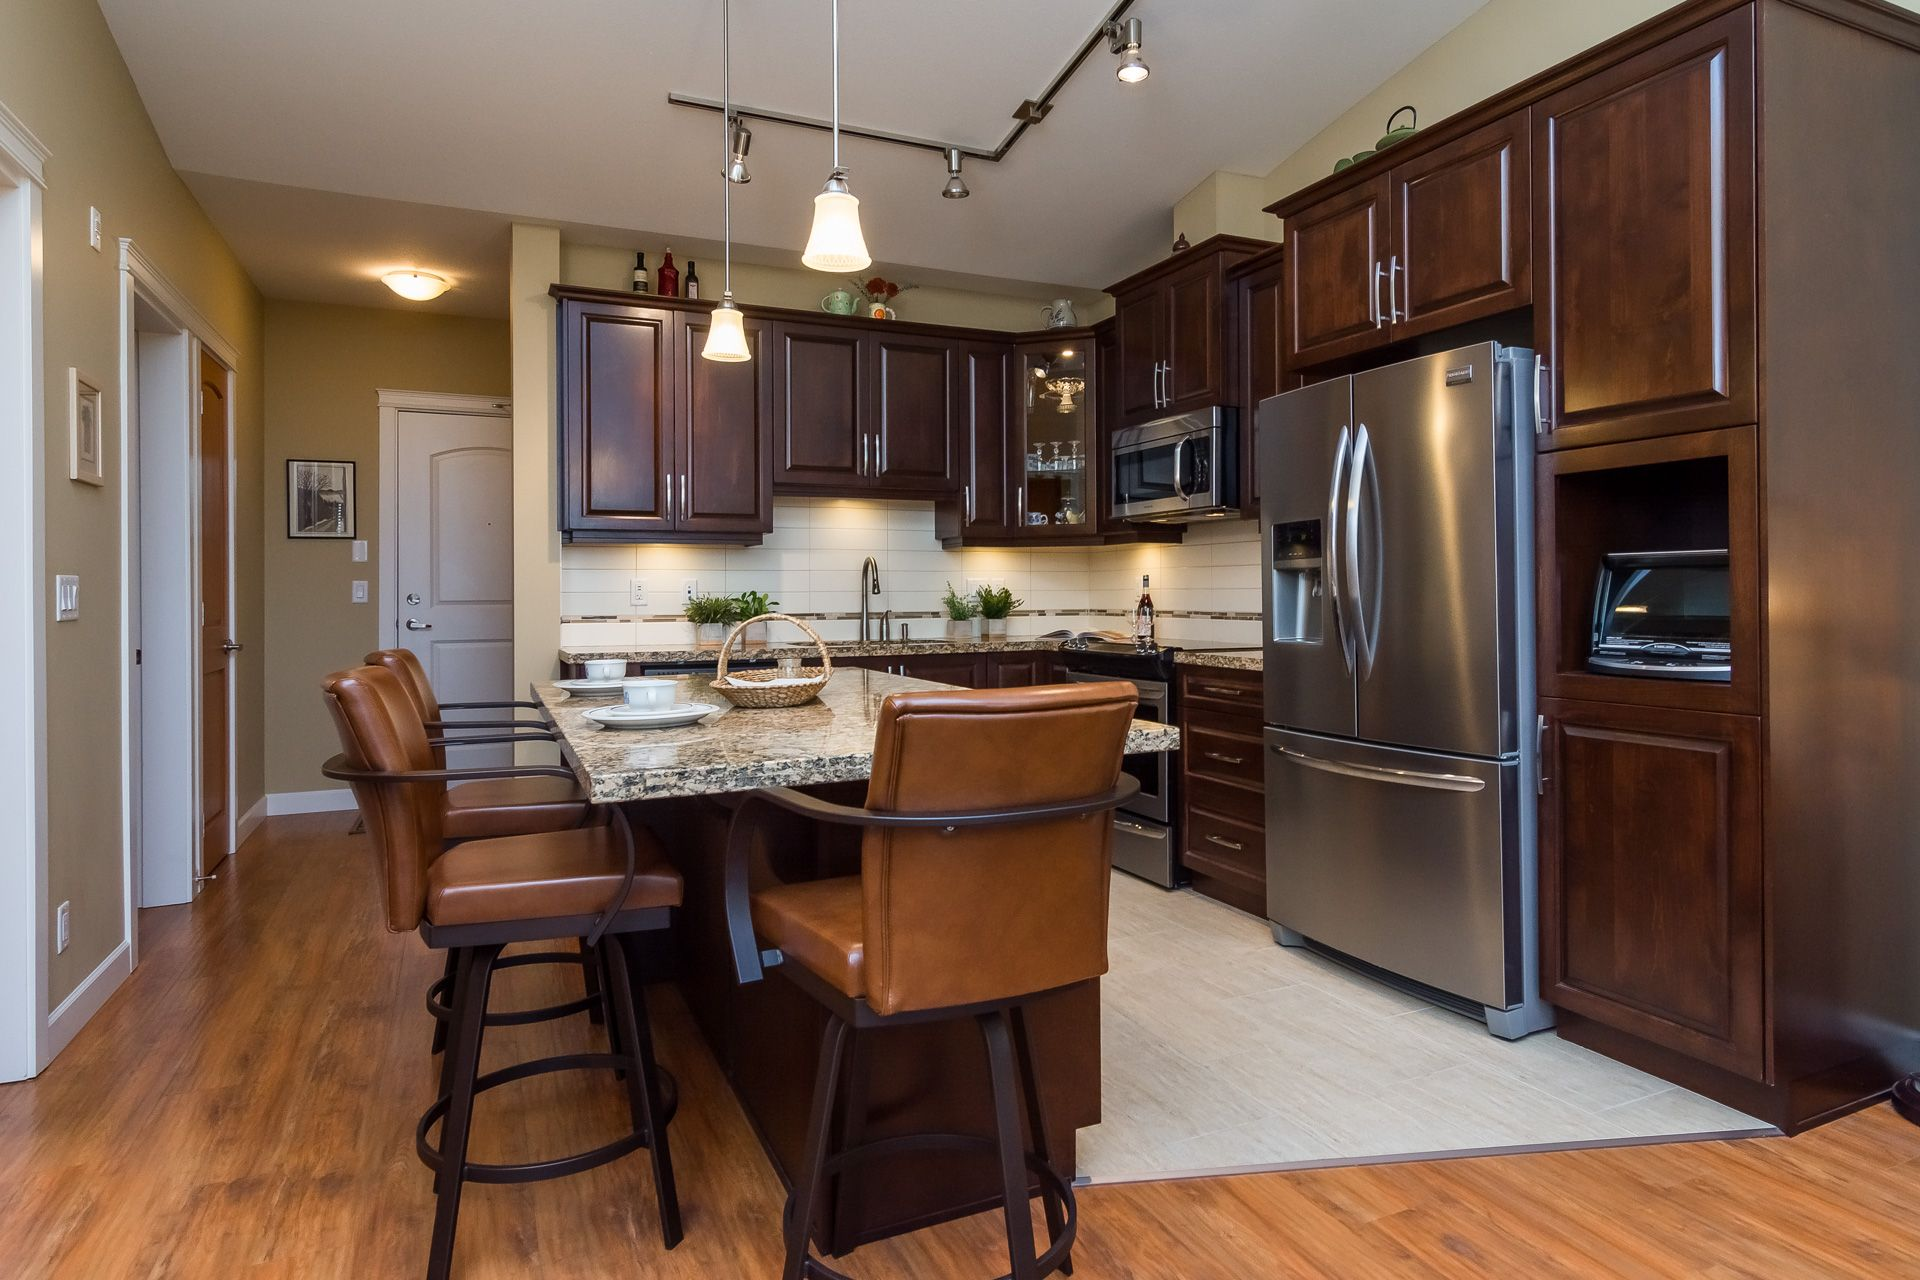 """Photo 13: Photos: 509 8258 207A Street in Langley: Willoughby Heights Condo for sale in """"YORKSON CREEK (BLG A)"""" : MLS®# R2221052"""